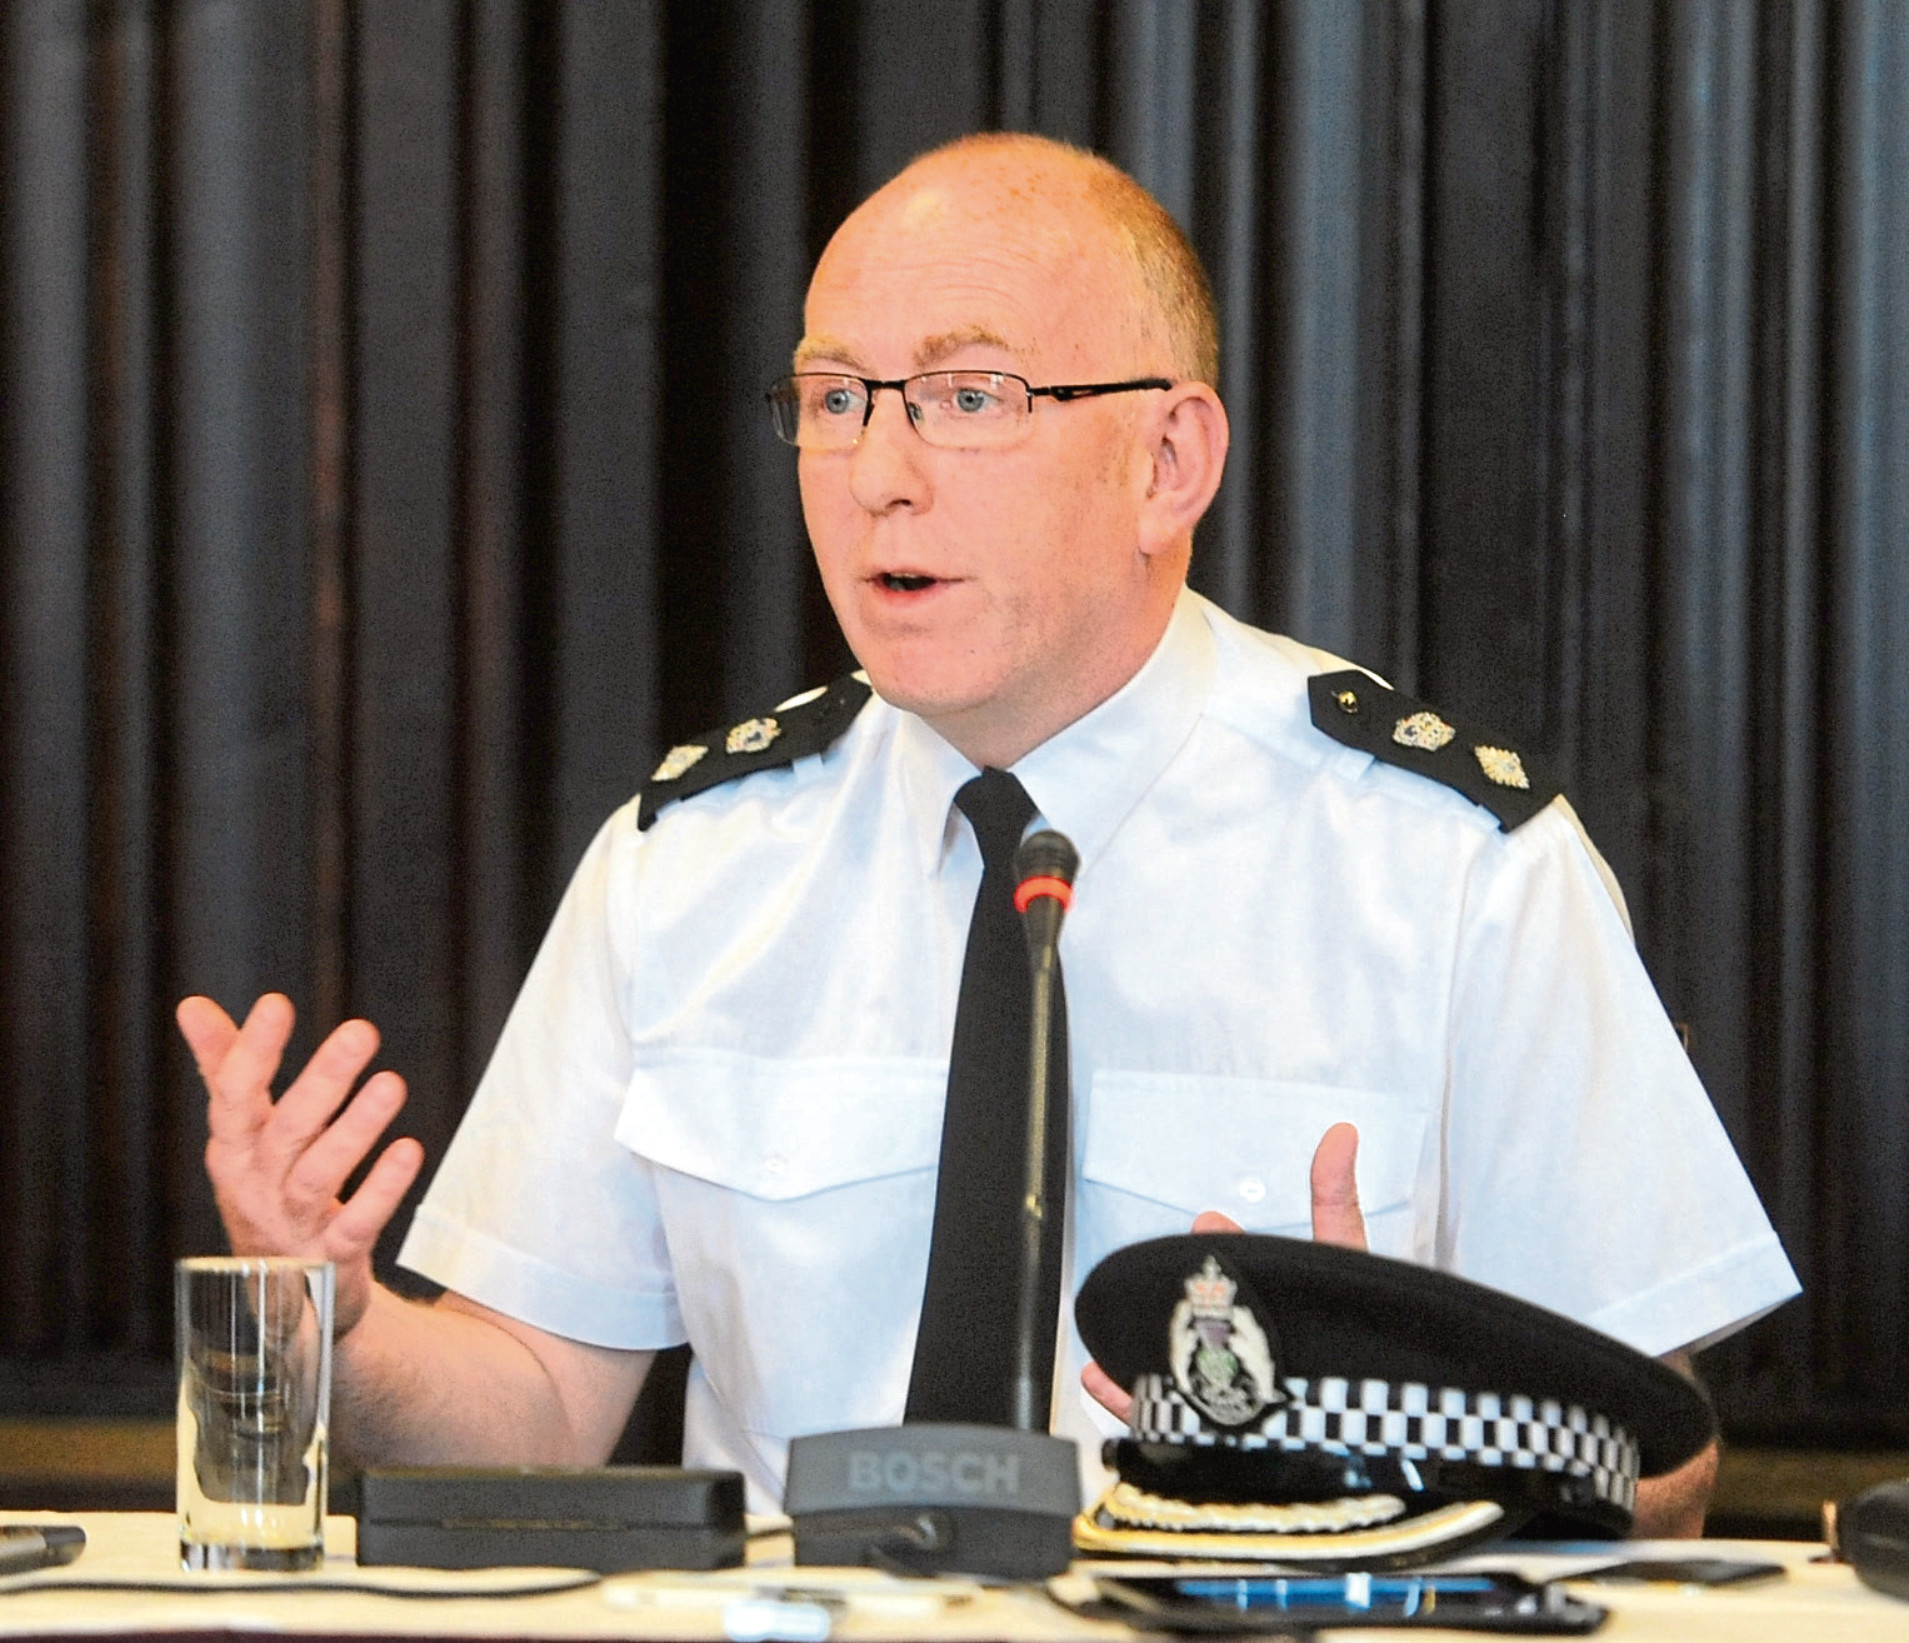 Chief Superintendent Campbell Thomson